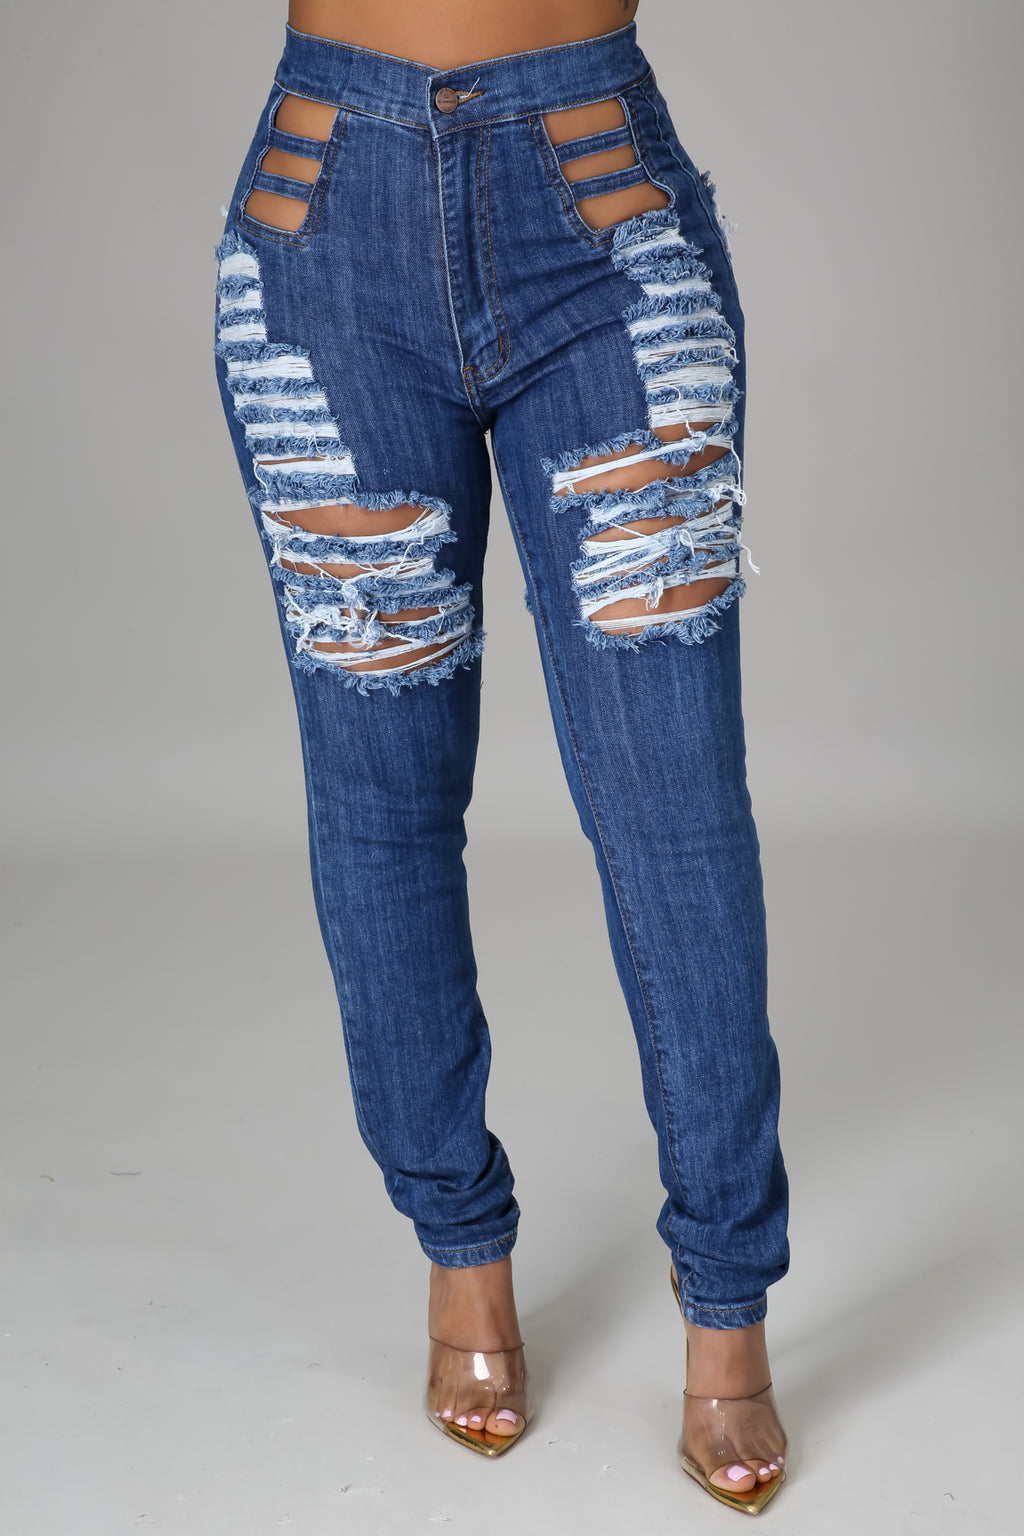 Bold Statement Jeans